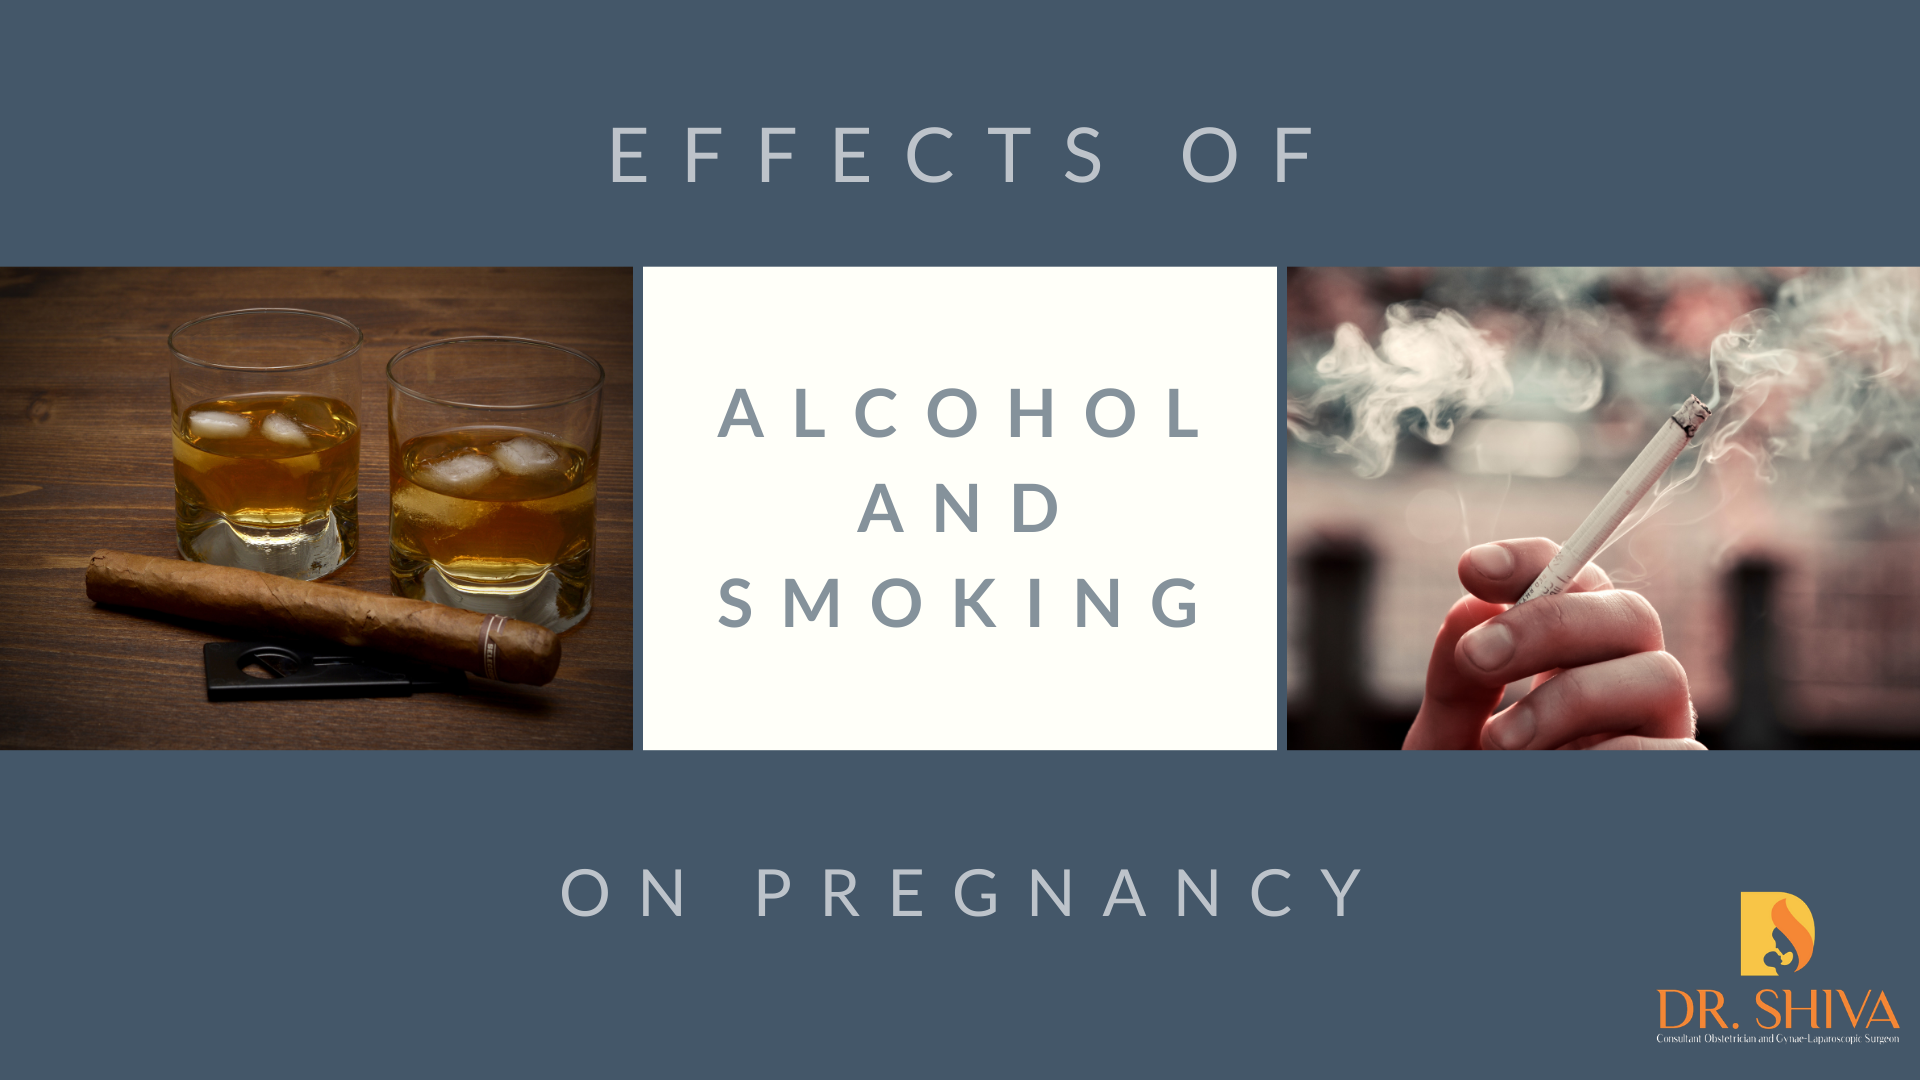 Effects of alcohol and smoking on pregnancy